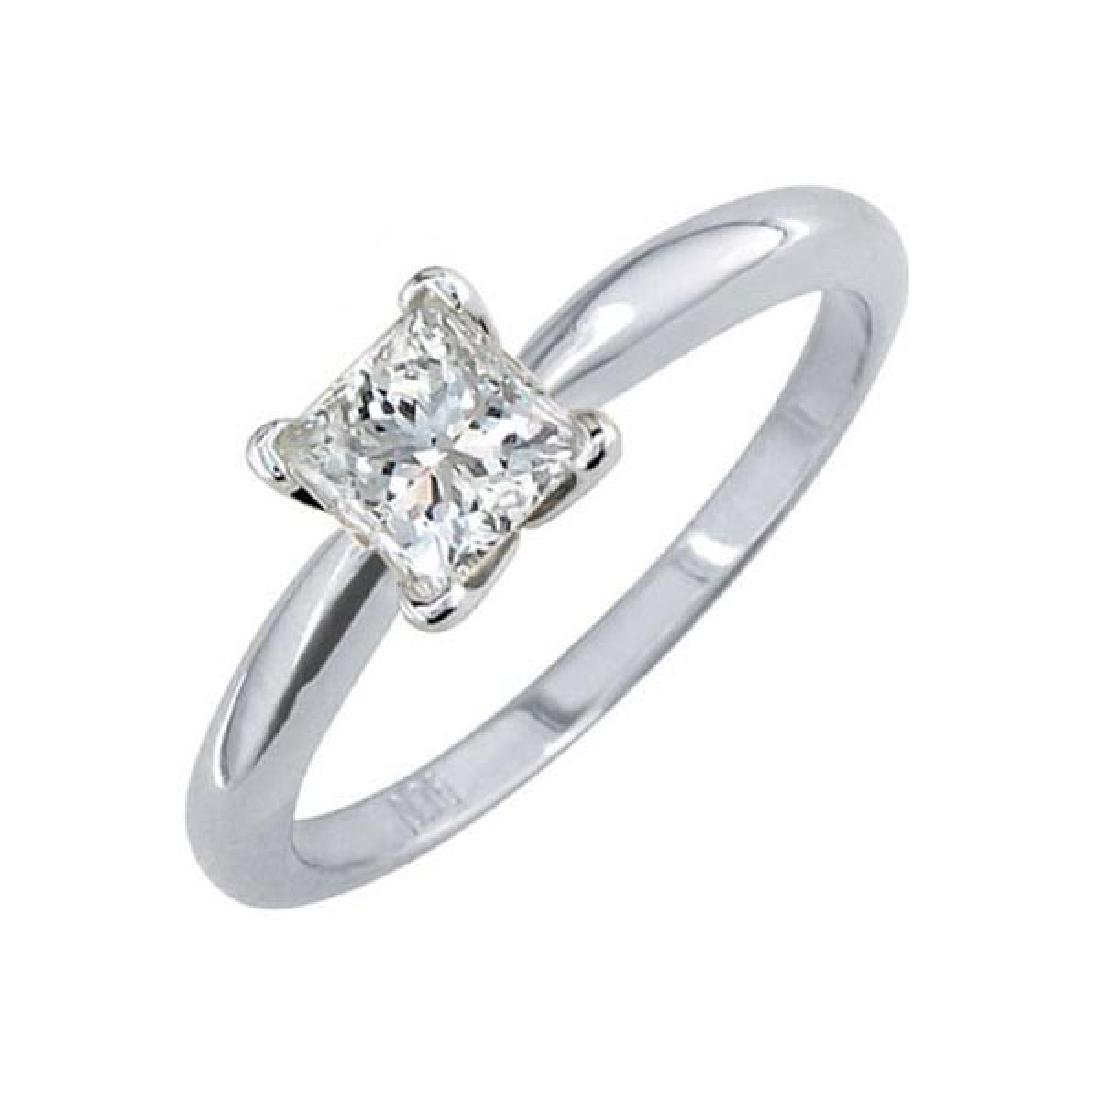 Certified 0.61 CTW Princess Diamond Solitaire 14k Ring